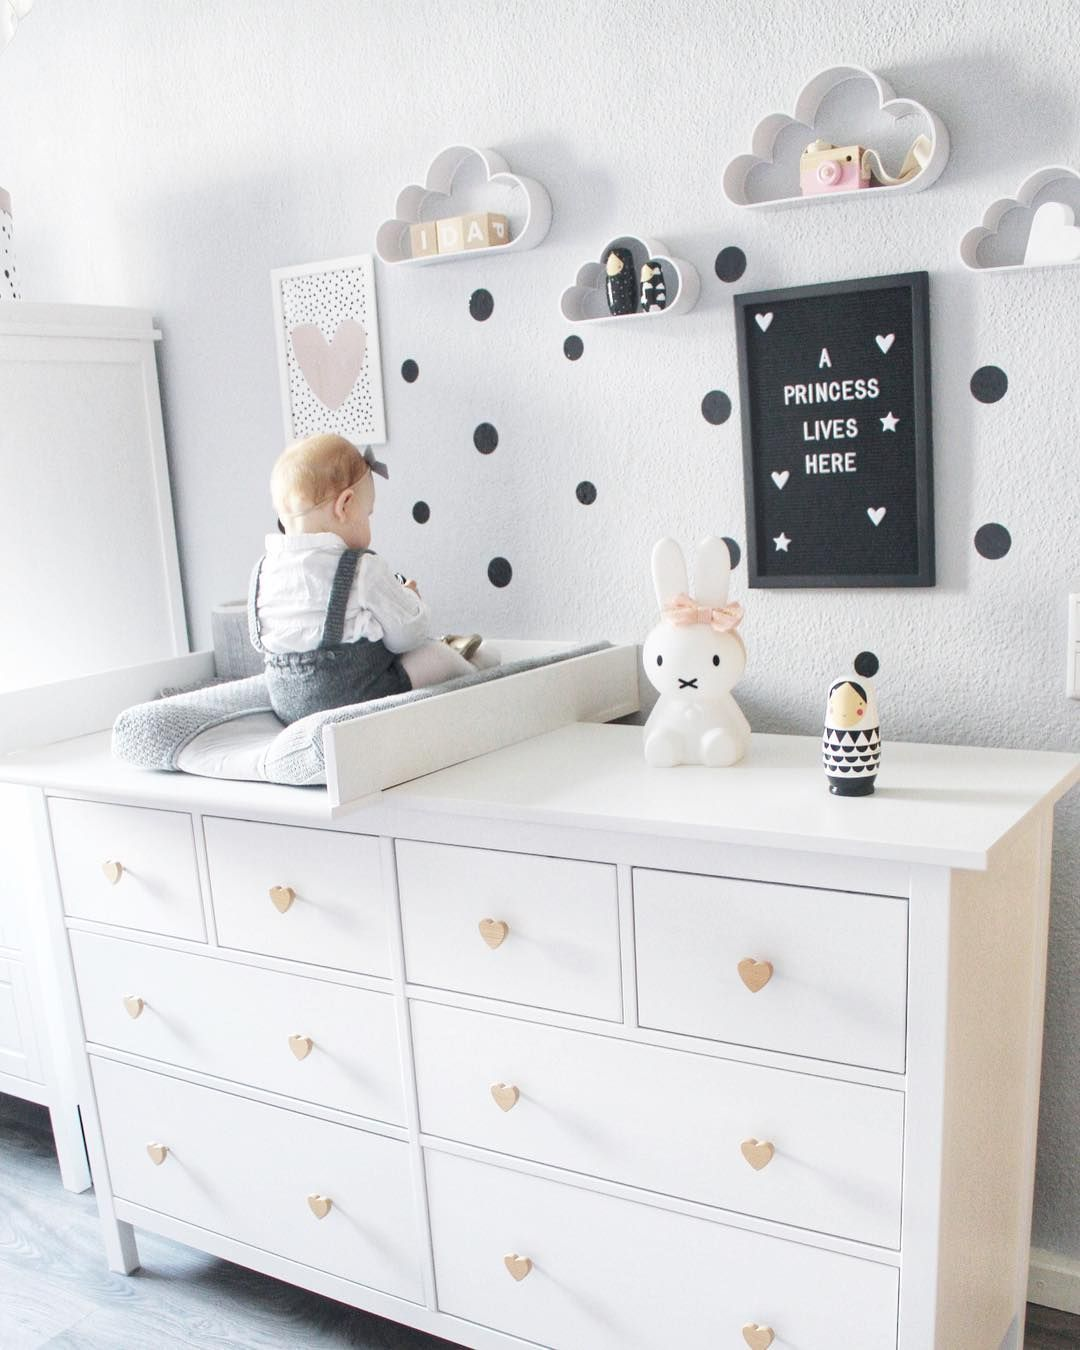 ein traumhaft sch nes kinderzimmer mit der ikea hemnes kommode als wickeltisch die m belkn pfe. Black Bedroom Furniture Sets. Home Design Ideas